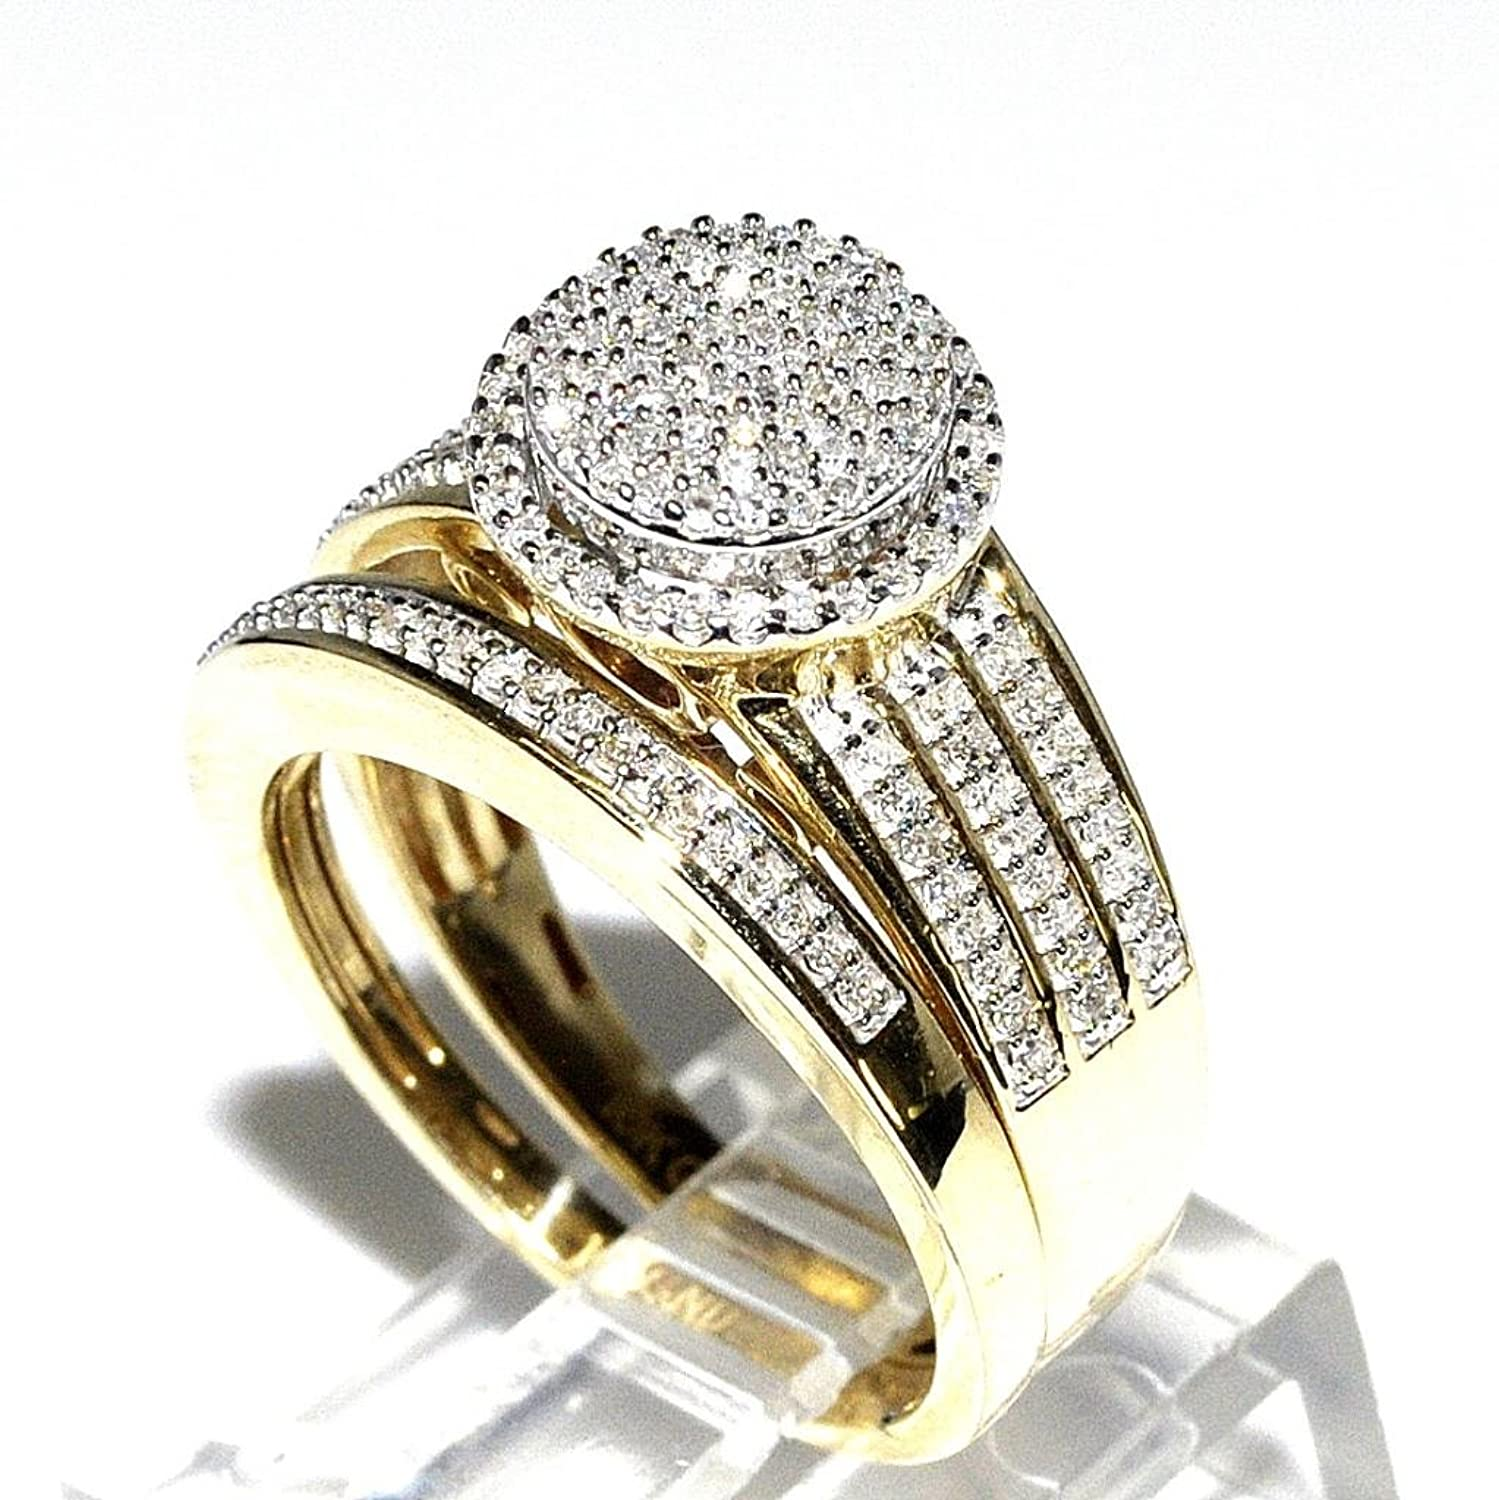 Amazon Rings MidwestJewellery His & Her 10k Yellow Gold Halo